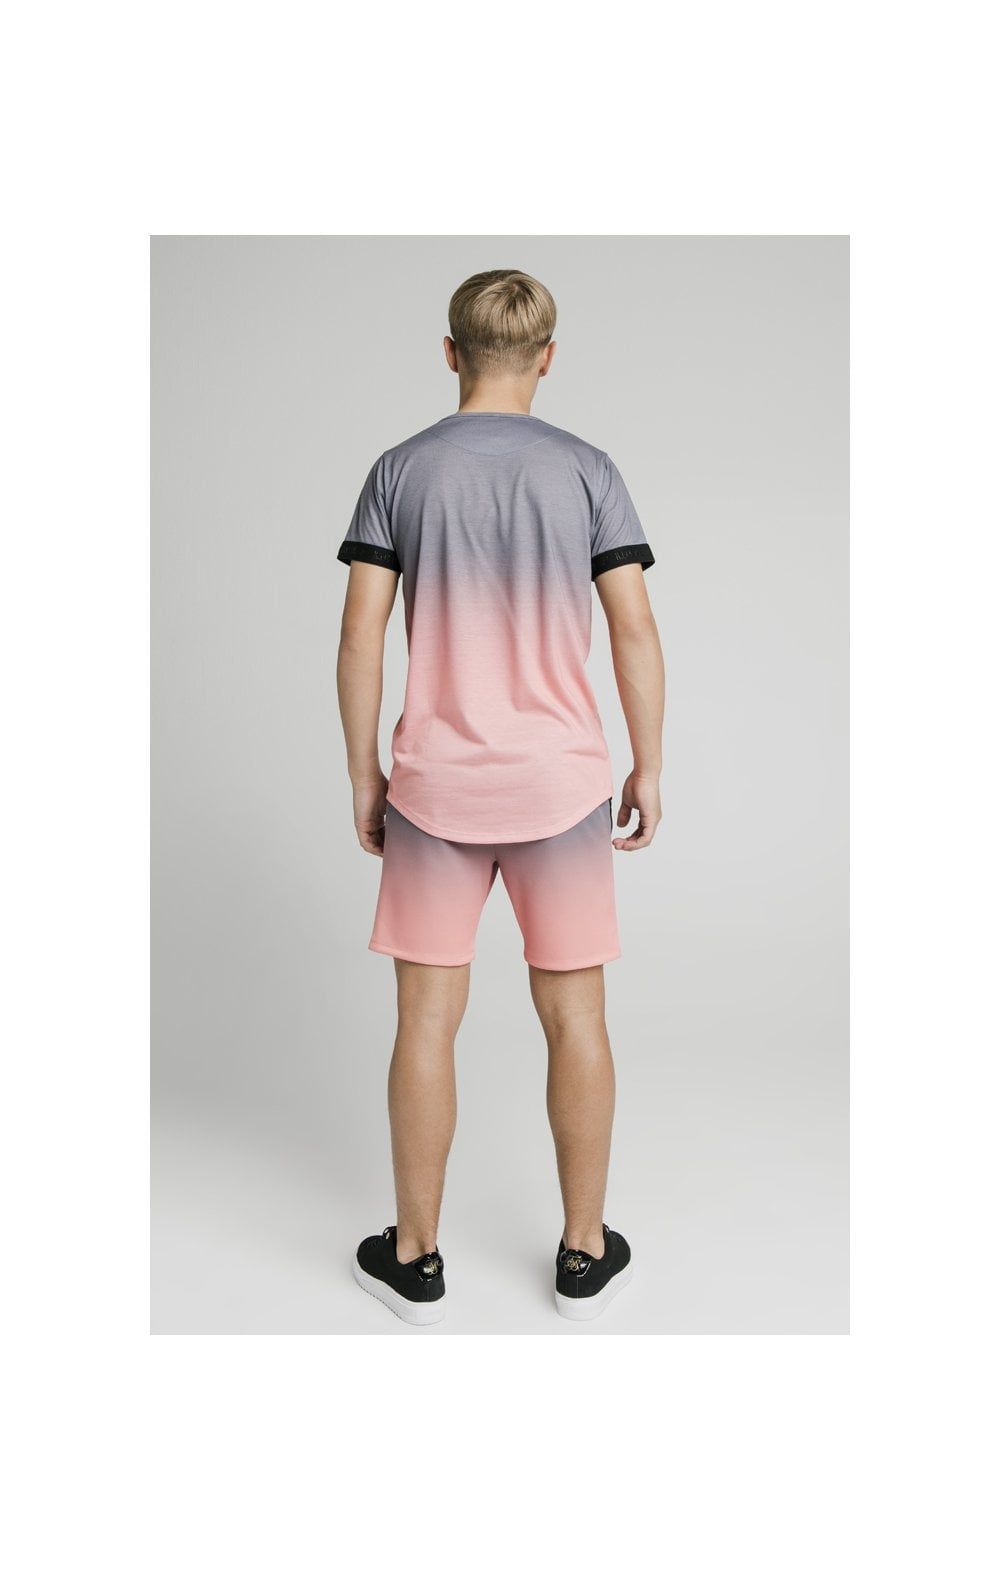 Illusive London Poly Fade Shorts - Grey & Peach (7)